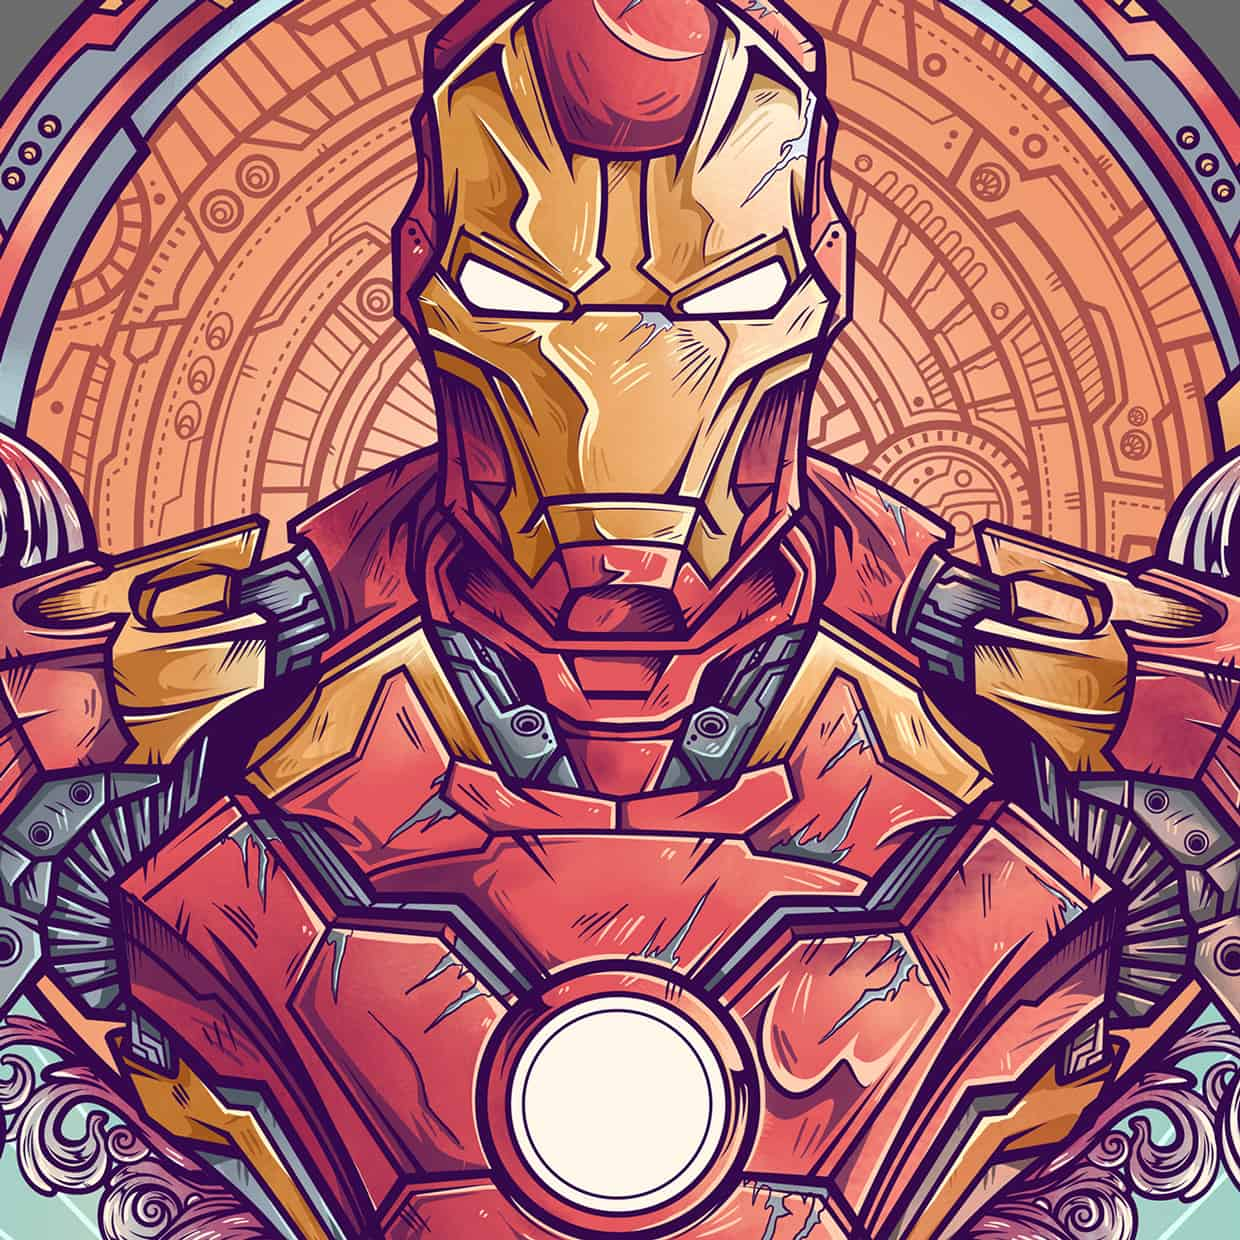 Art Vs Design : Ironman vs ultron by juan manuel orozco design ideas